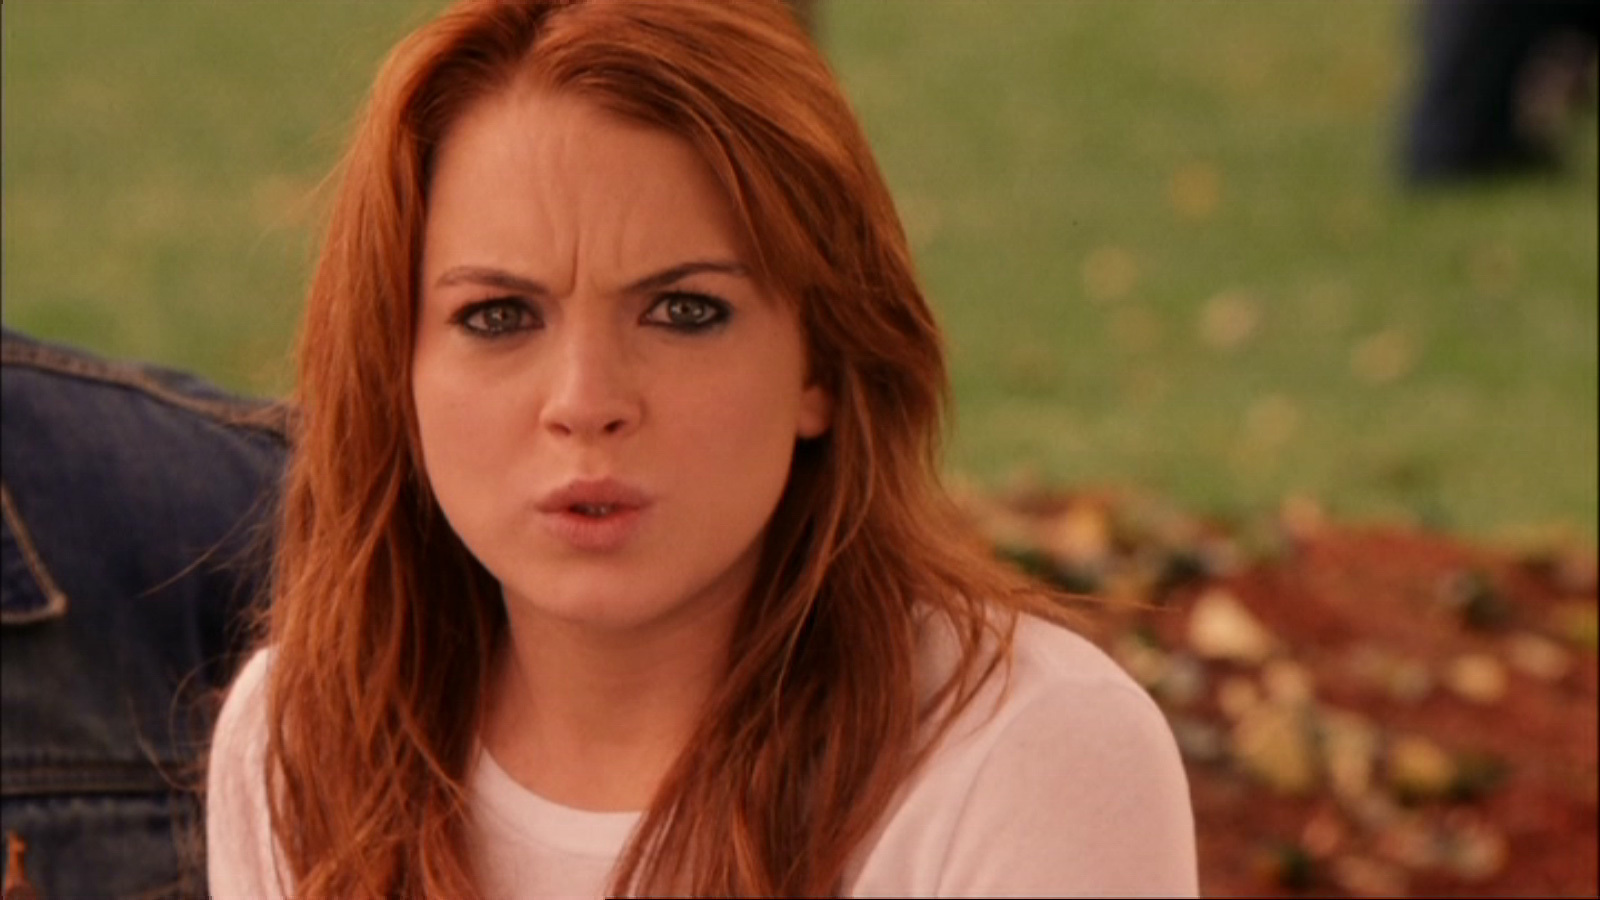 Mean Girls Screencap Mean Girls Image 2363569 Fanpop